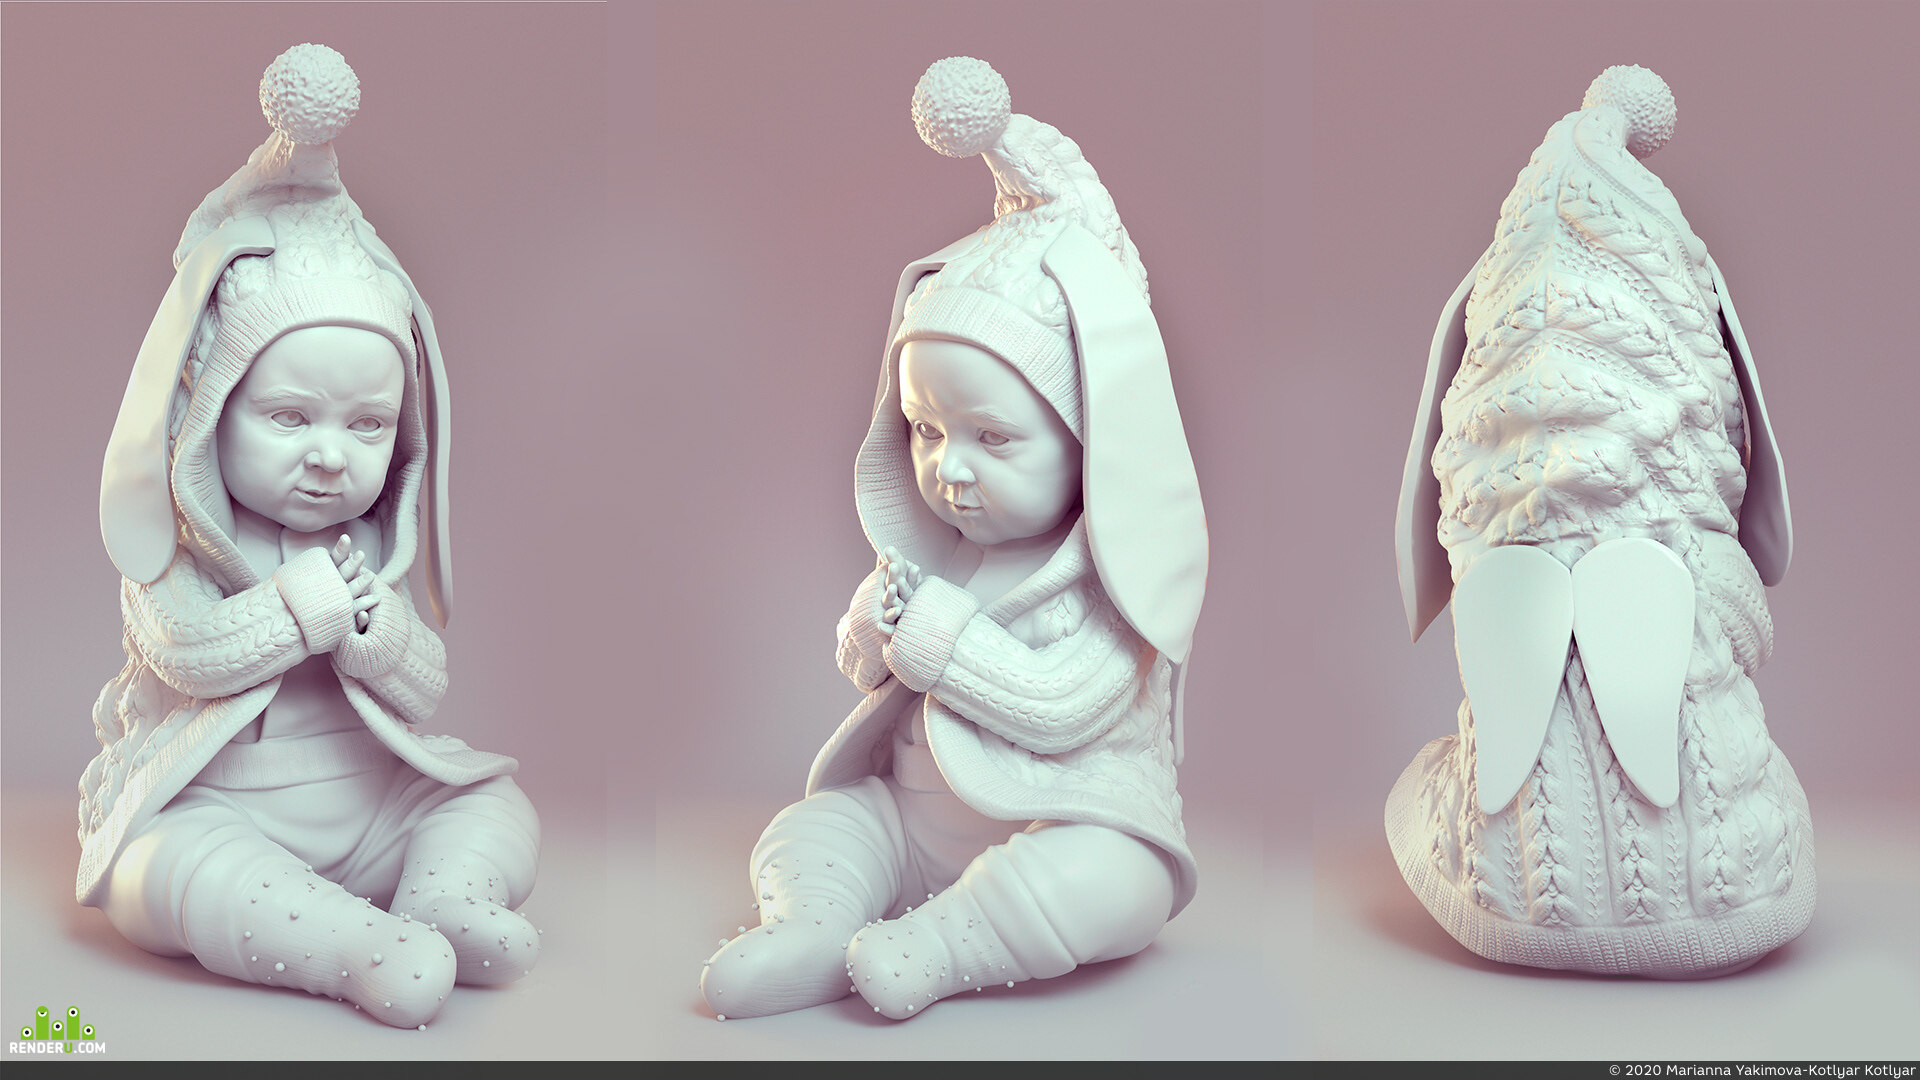 preview Sculpting model of a baby for 3d printing